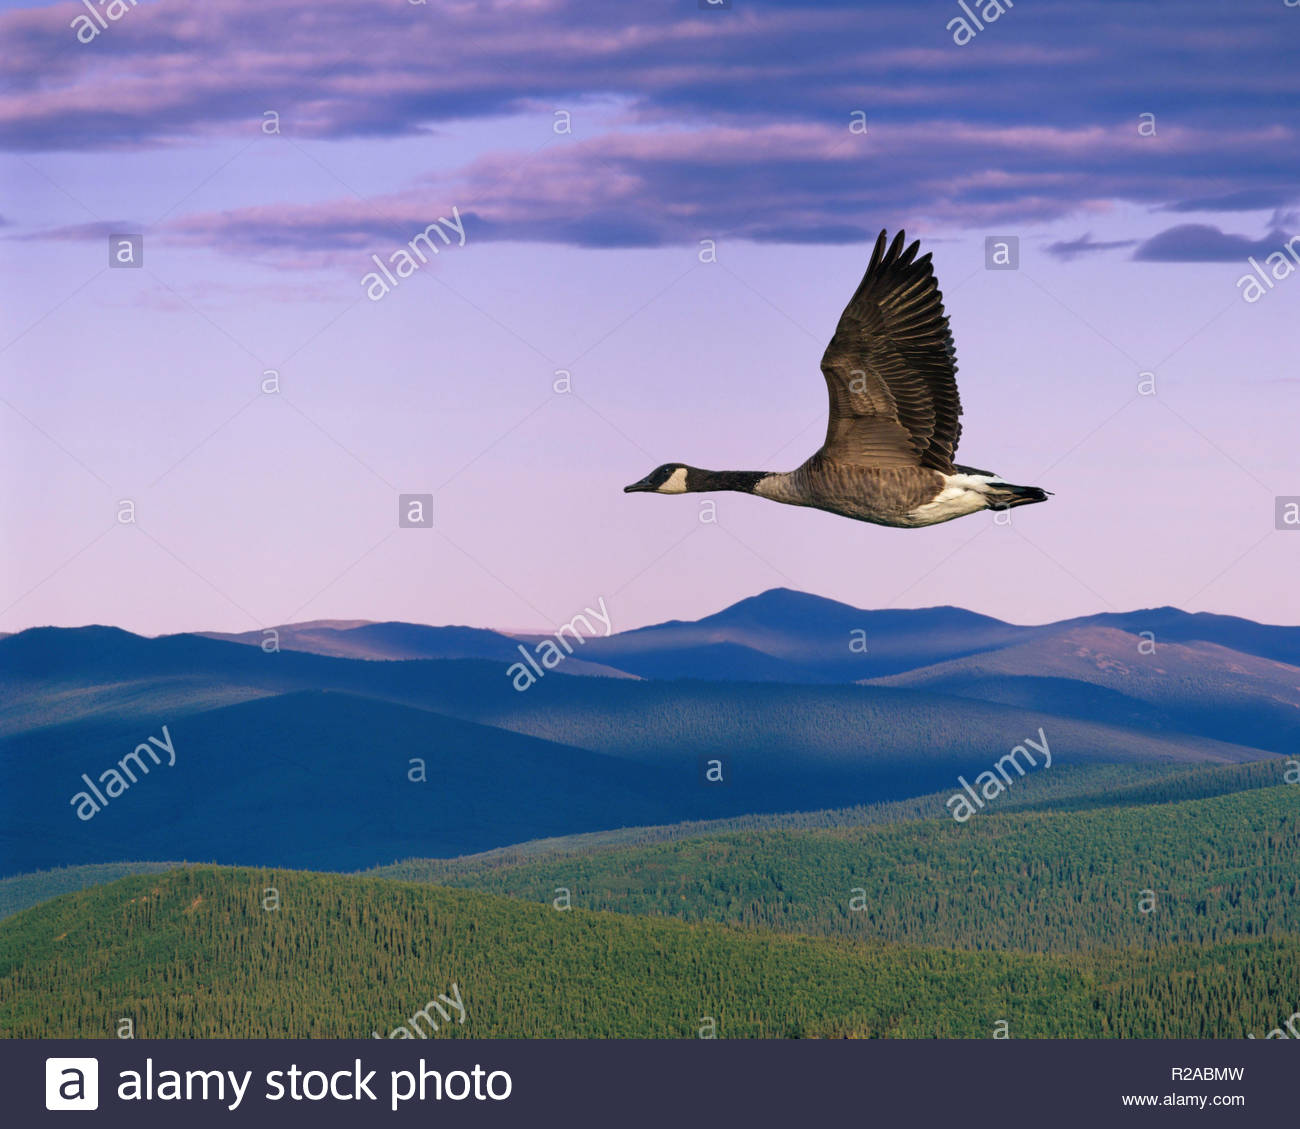 Canada Goose flying over wilderness forest and mountains near Dawson City Yukon Territory CanadaStock Photo